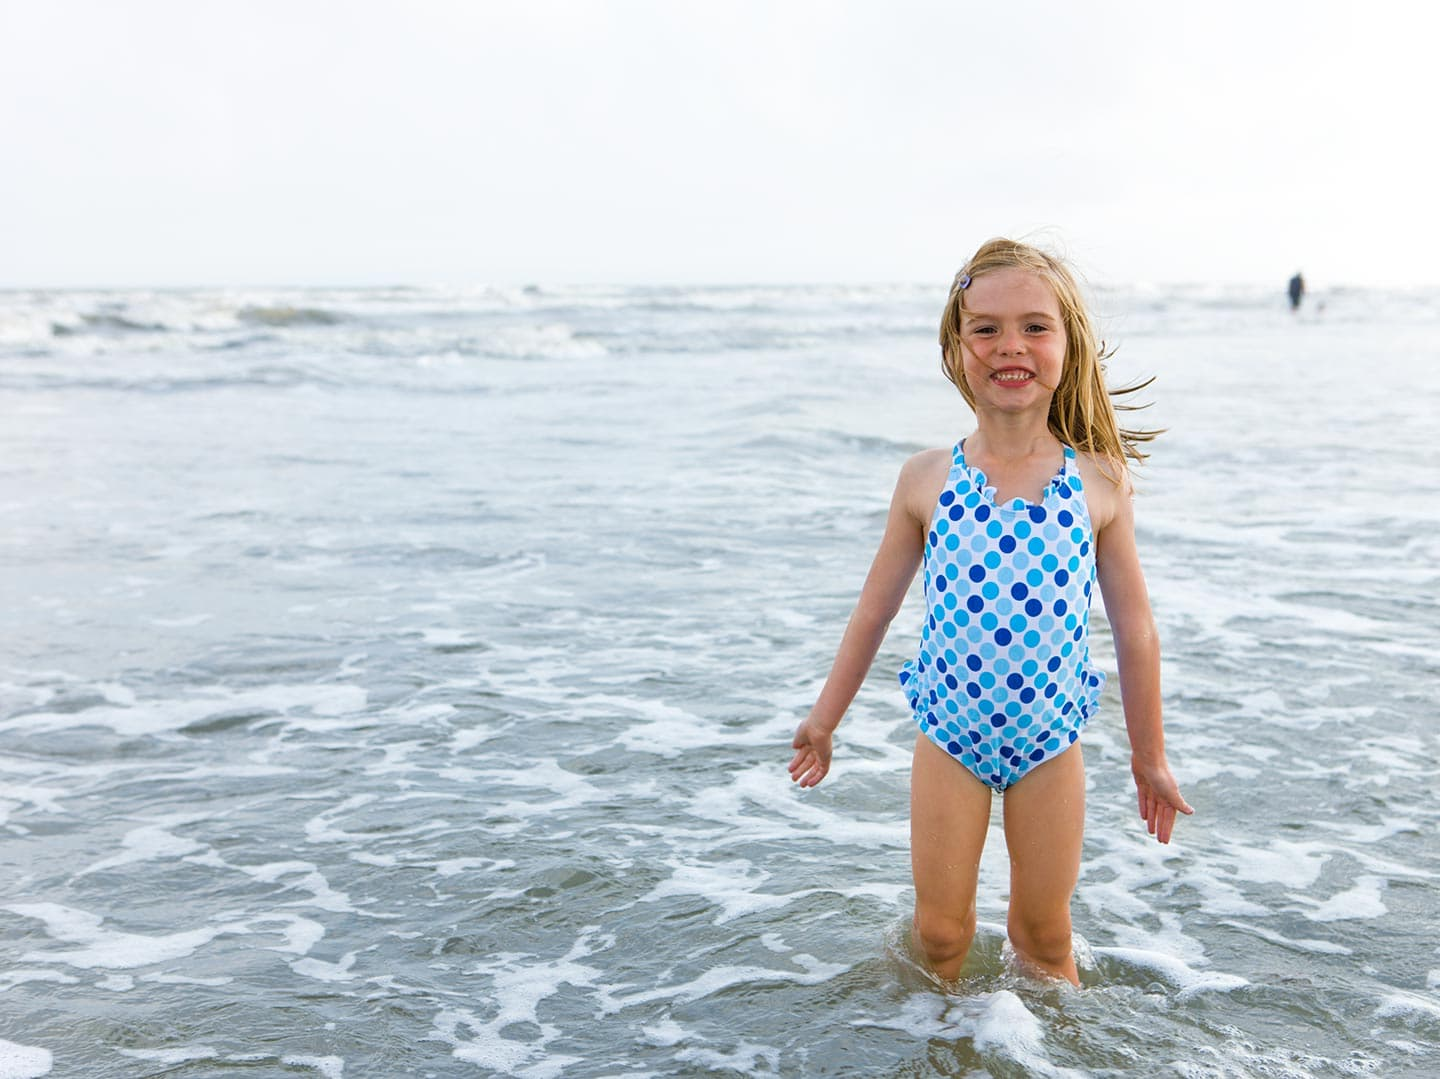 Little Girl at Beach in Swimsuit Smiling in Water